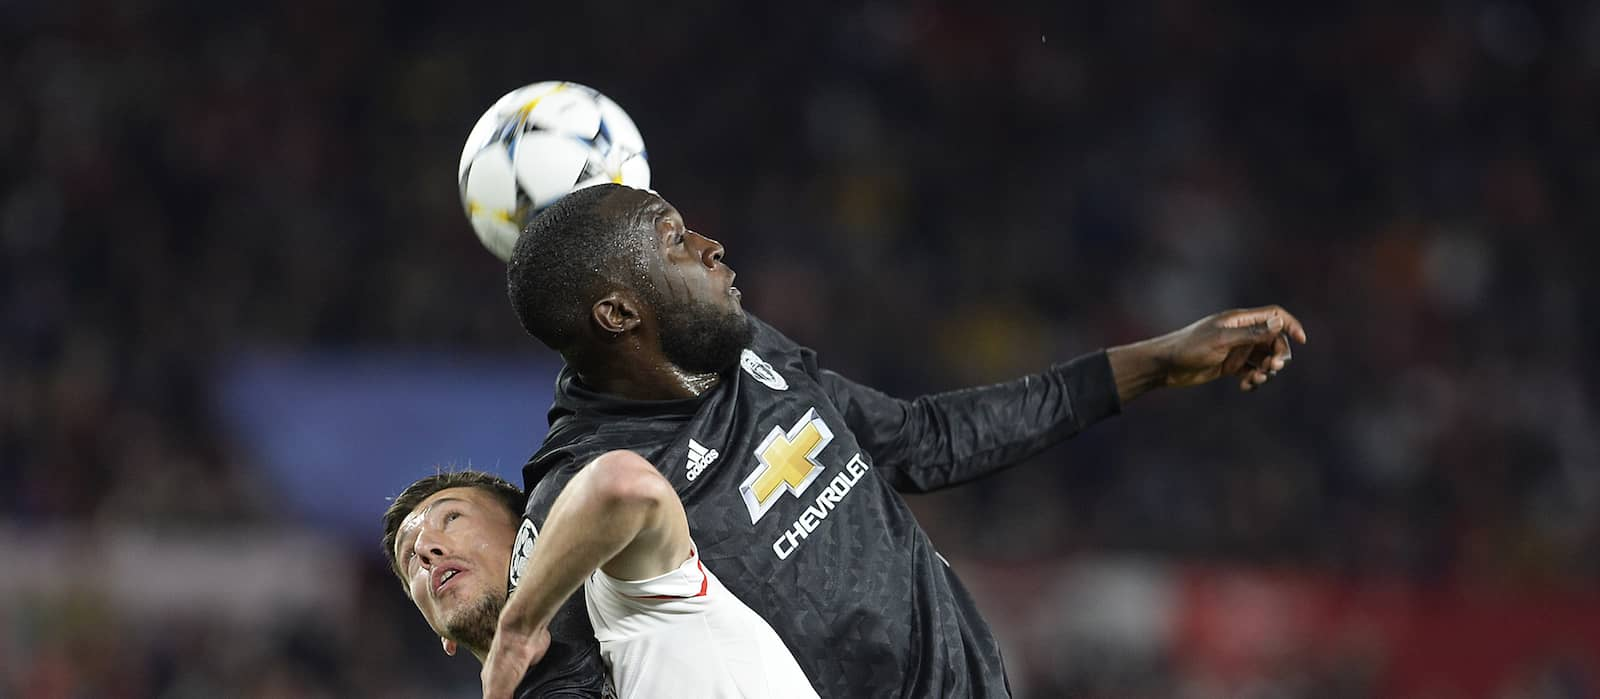 Sevilla 0-0 Manchester United: Player ratings